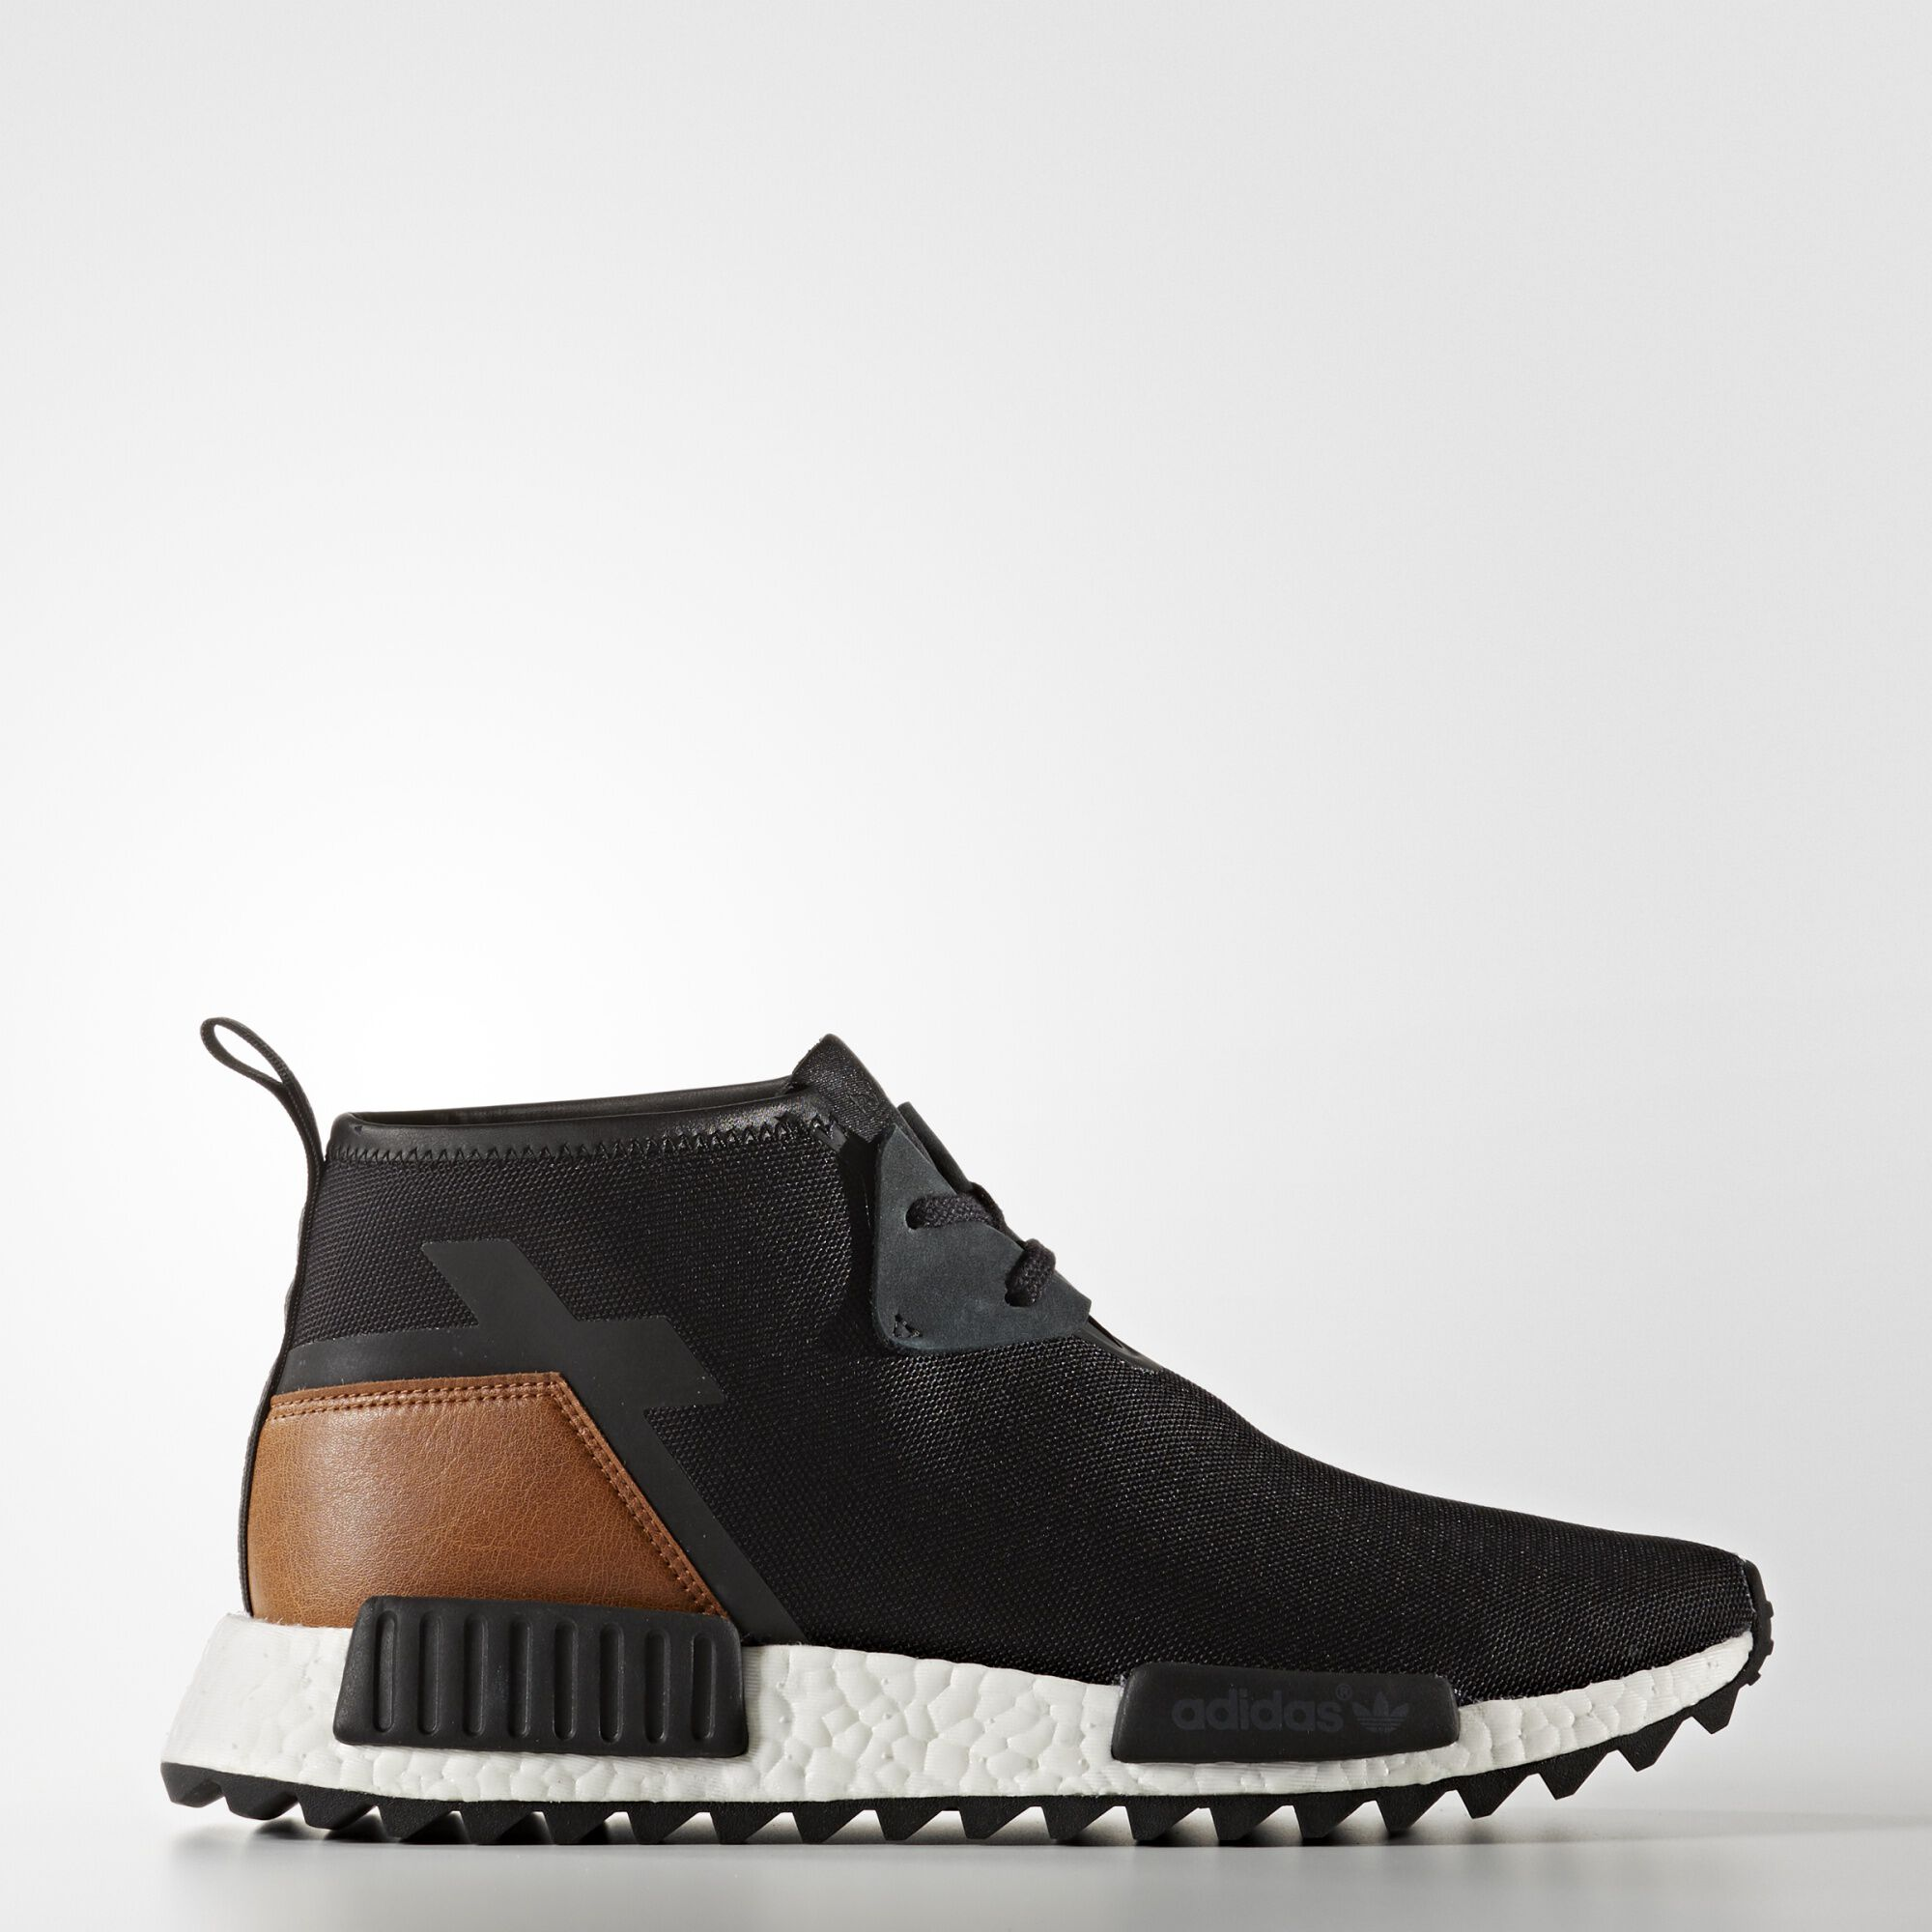 nxfdtw adidas NMD Shoes - R1, R2, XR1 NMDs and More | adidas US